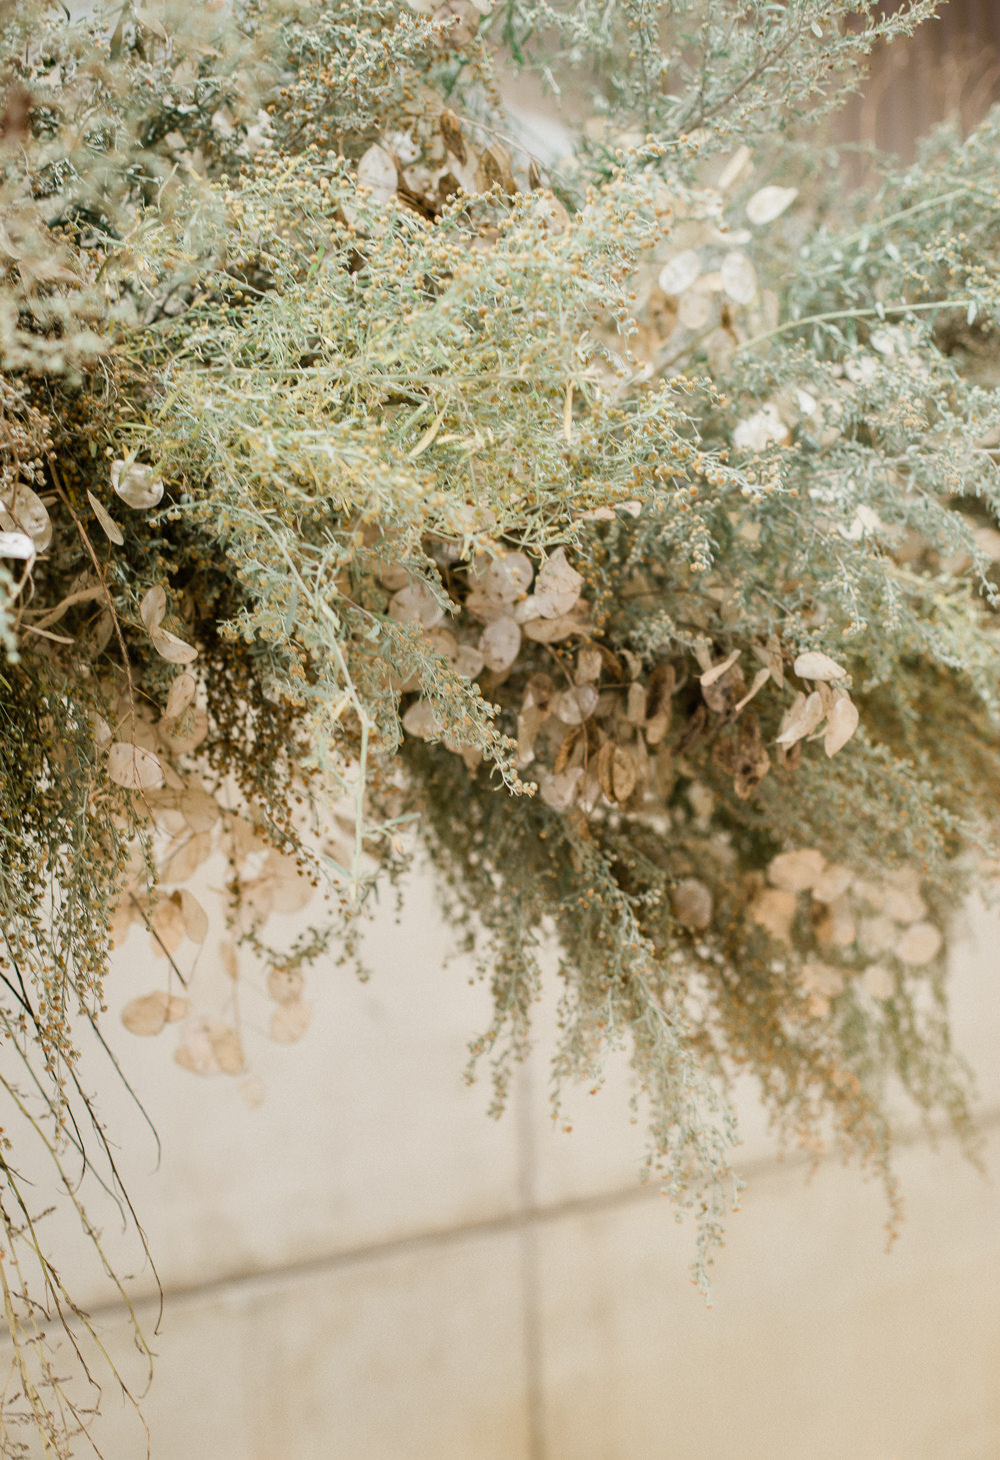 Flower Installation Backdrop Greenery Foliage Grass Grasses Wild Natural Table Suspended Cloud Hanging Fine Art Farm Wedding Ideas Seyi Rochelle Photography